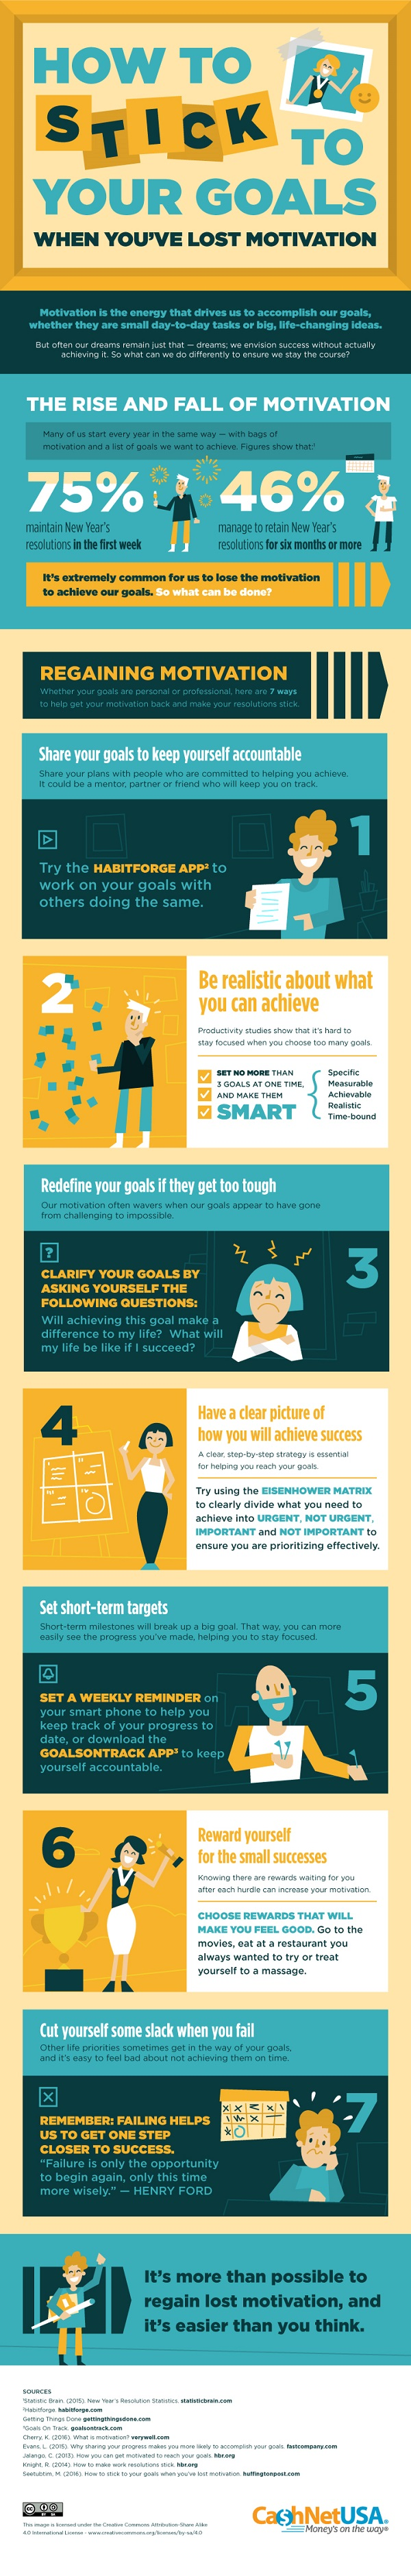 Infographic: How To Stick To Your Goals When You've Lost Motivation